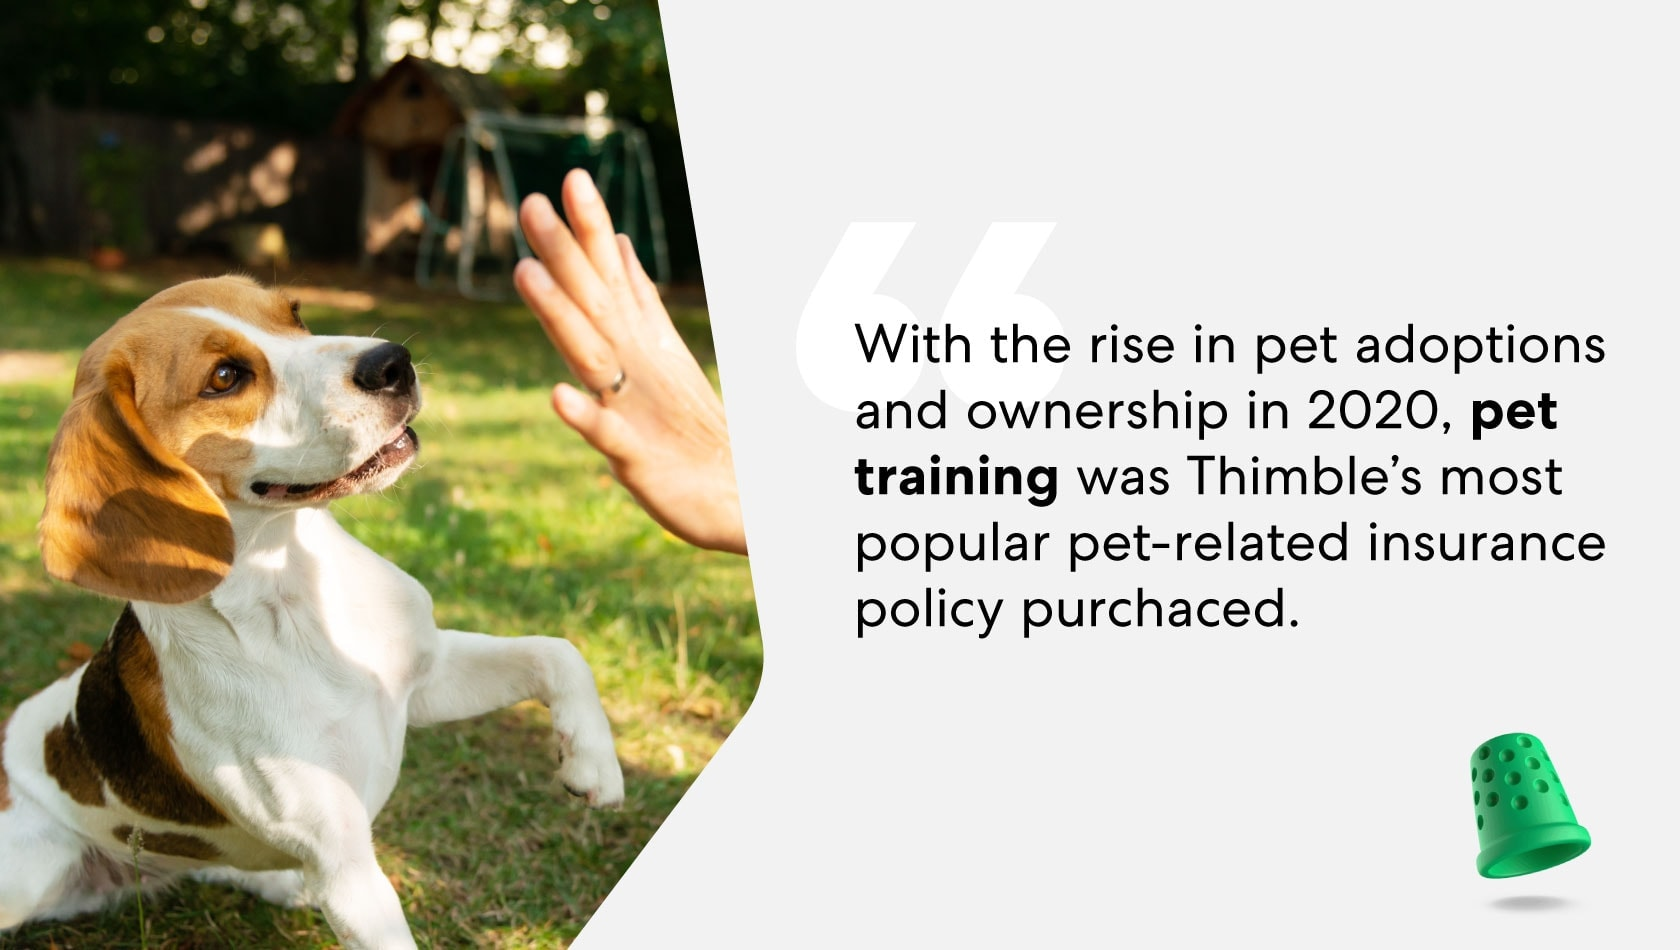 pet-training-insurance-policy